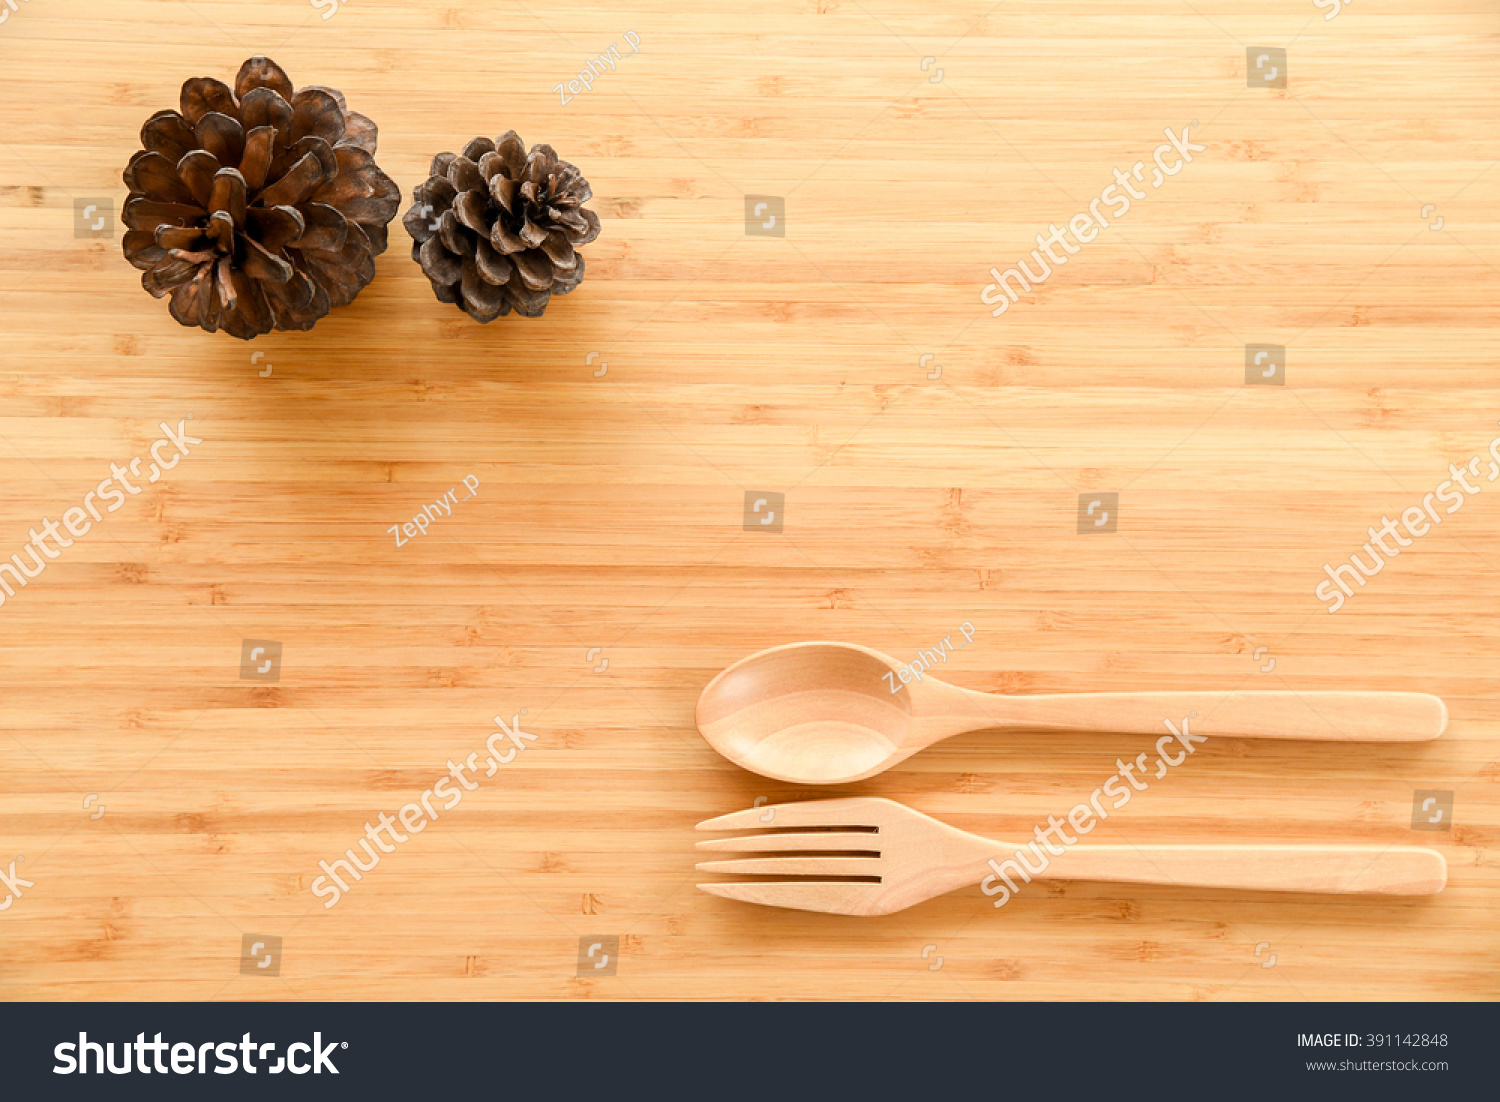 Wooden Spoon Fork Pine Cones On Stock Photo (Royalty Free) 391142848 ...